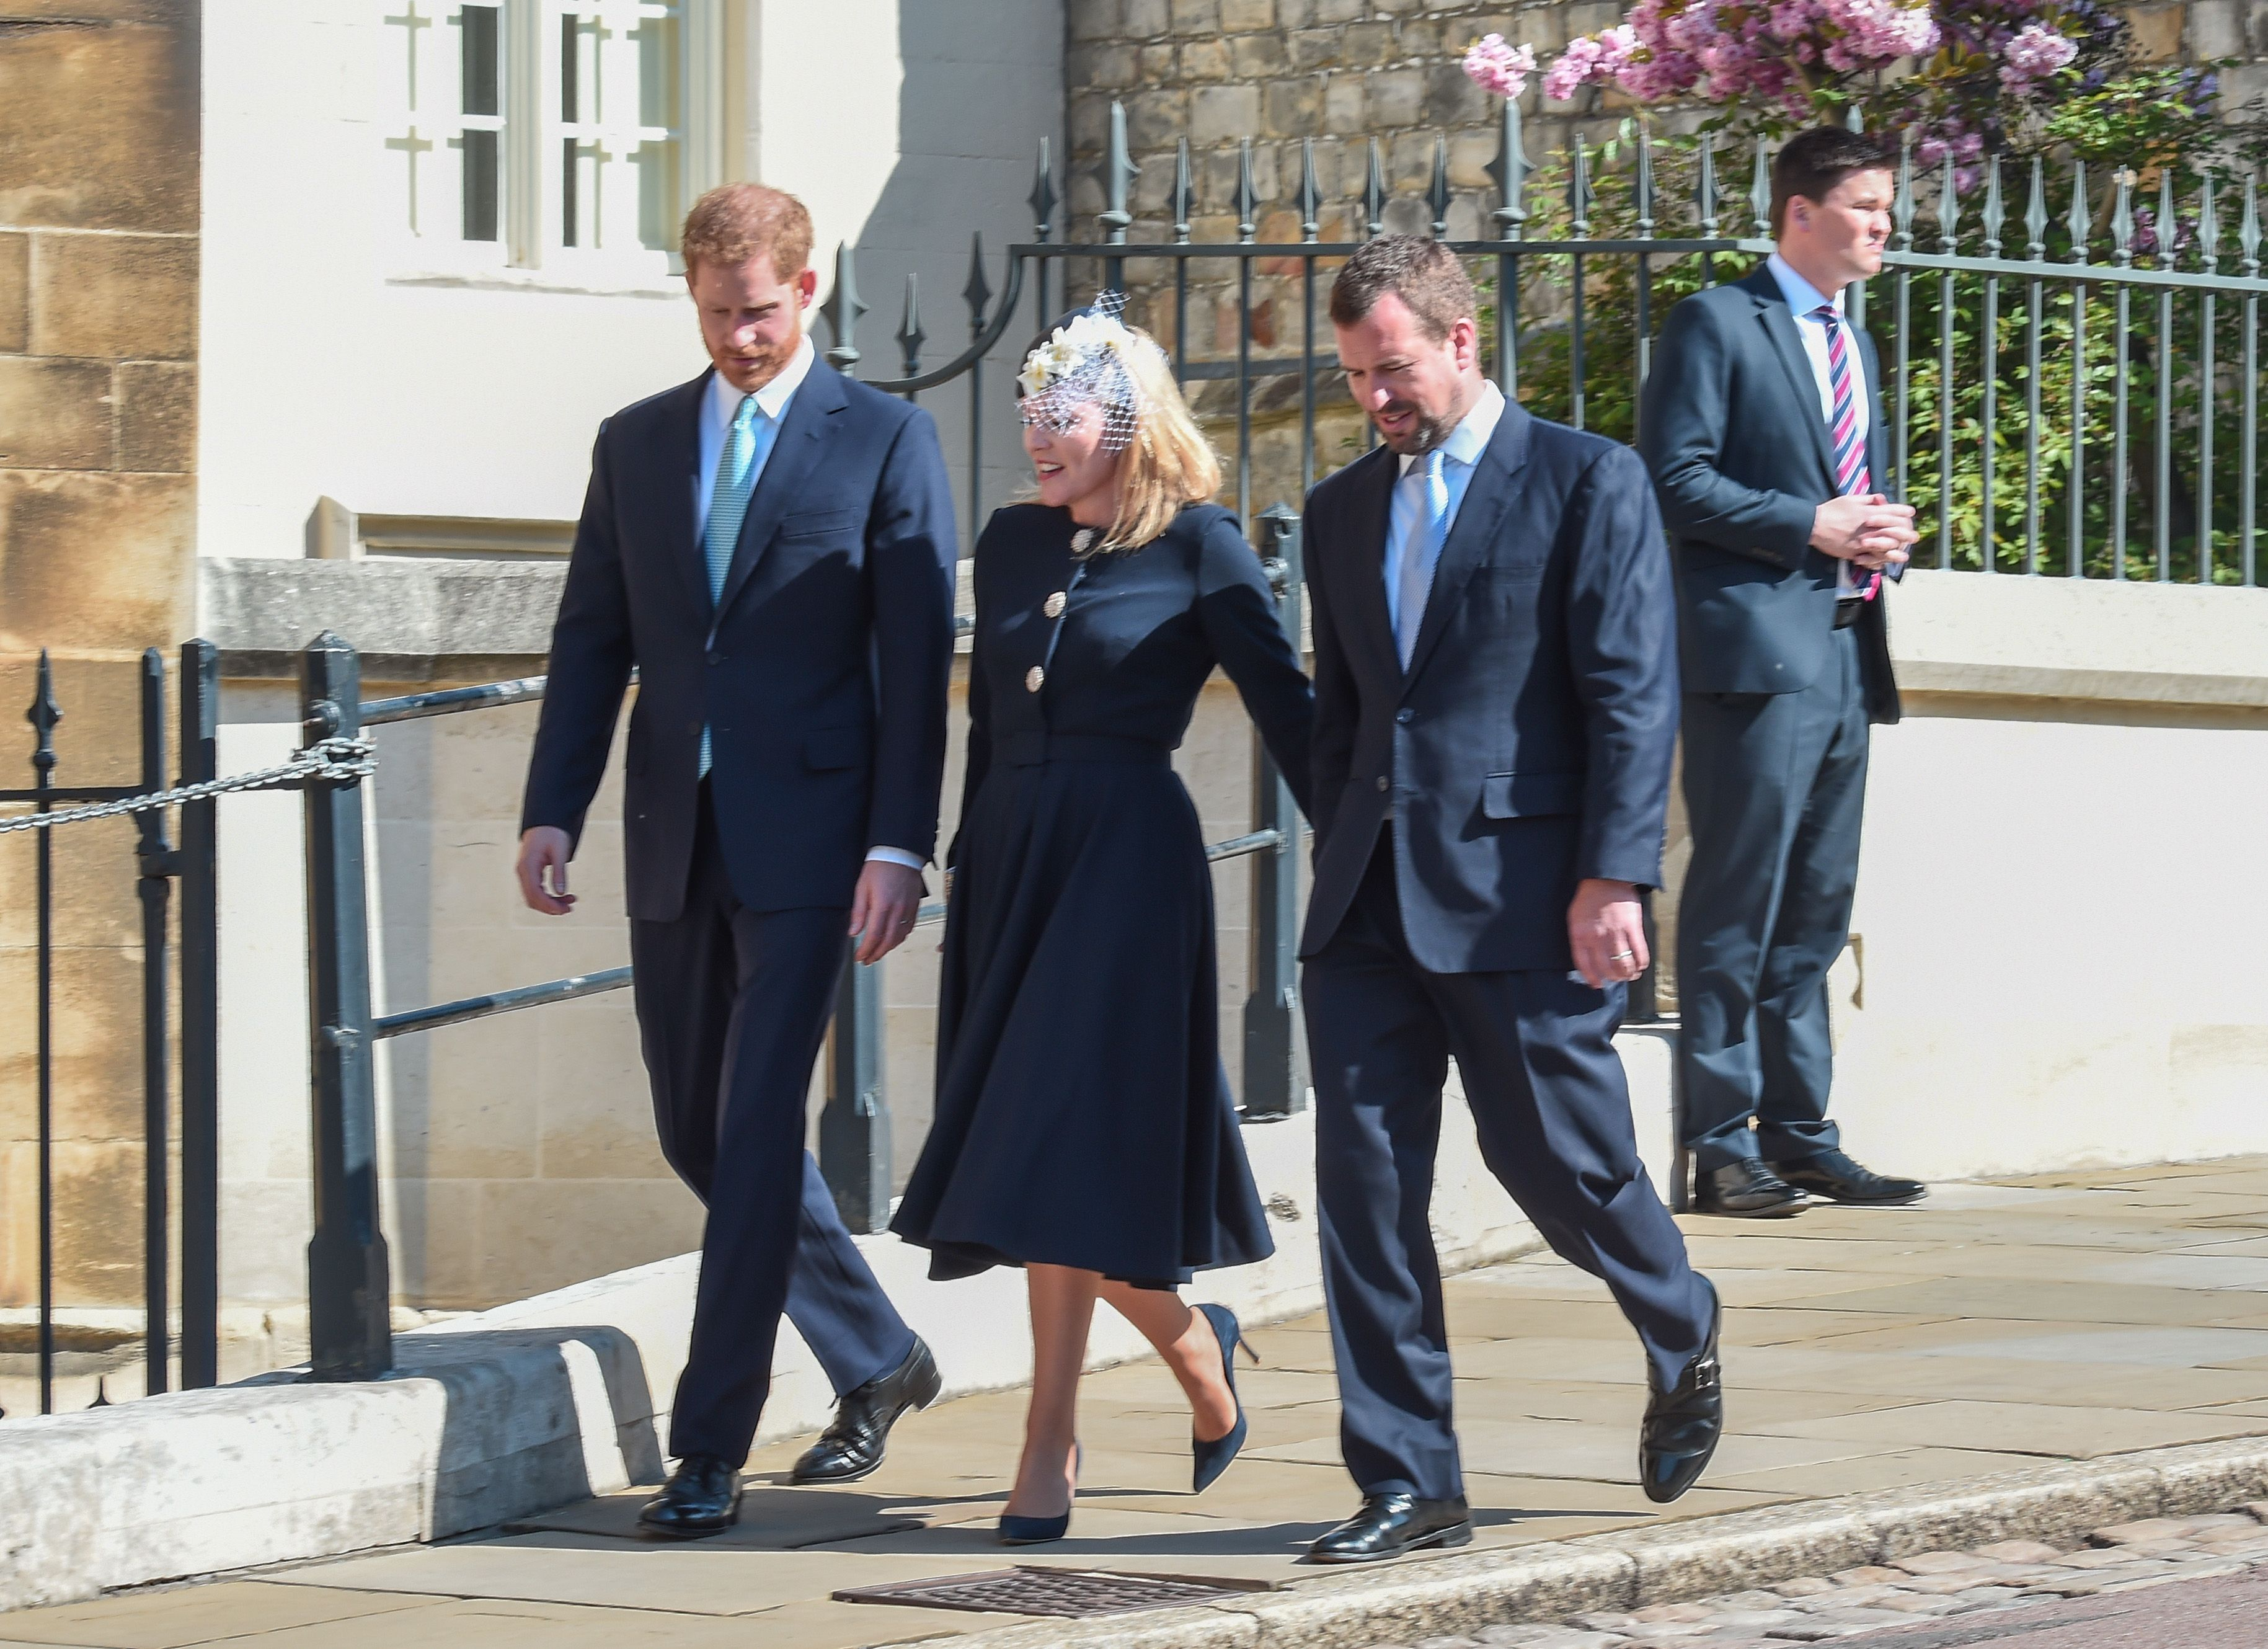 Prince Harry arriving at St. George's Chapel alongside his cousin Peter Phillips and his wife Autumn.